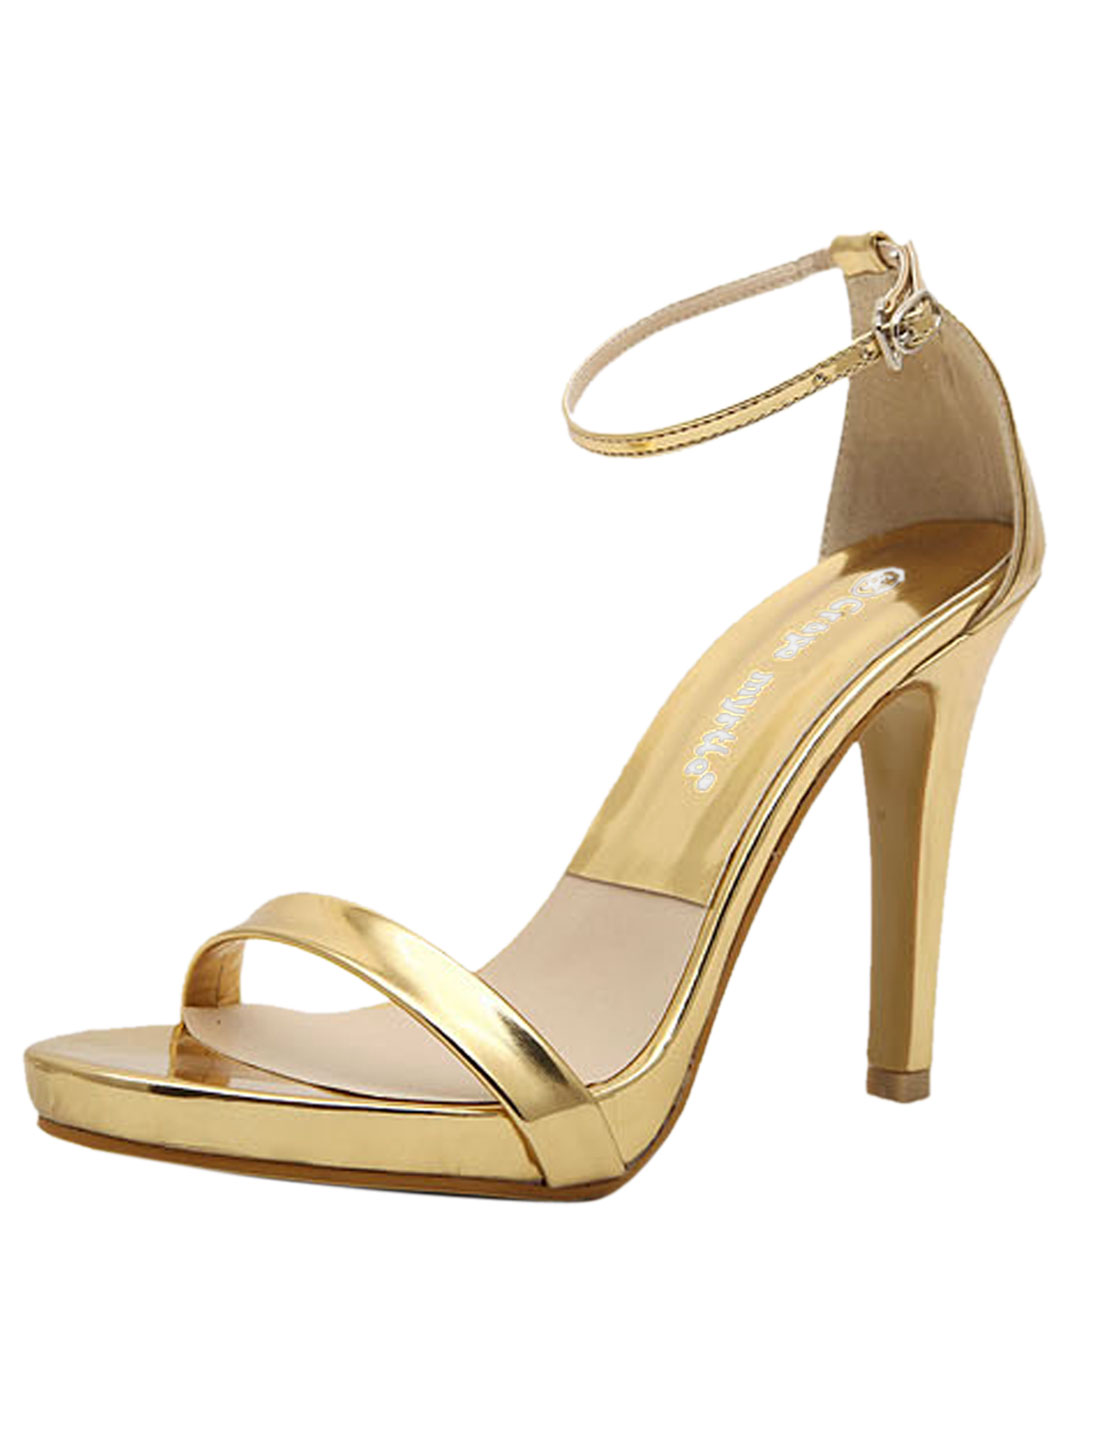 Lady Open Toe Buckled High Heel Sandals Golden Tone US 6.5